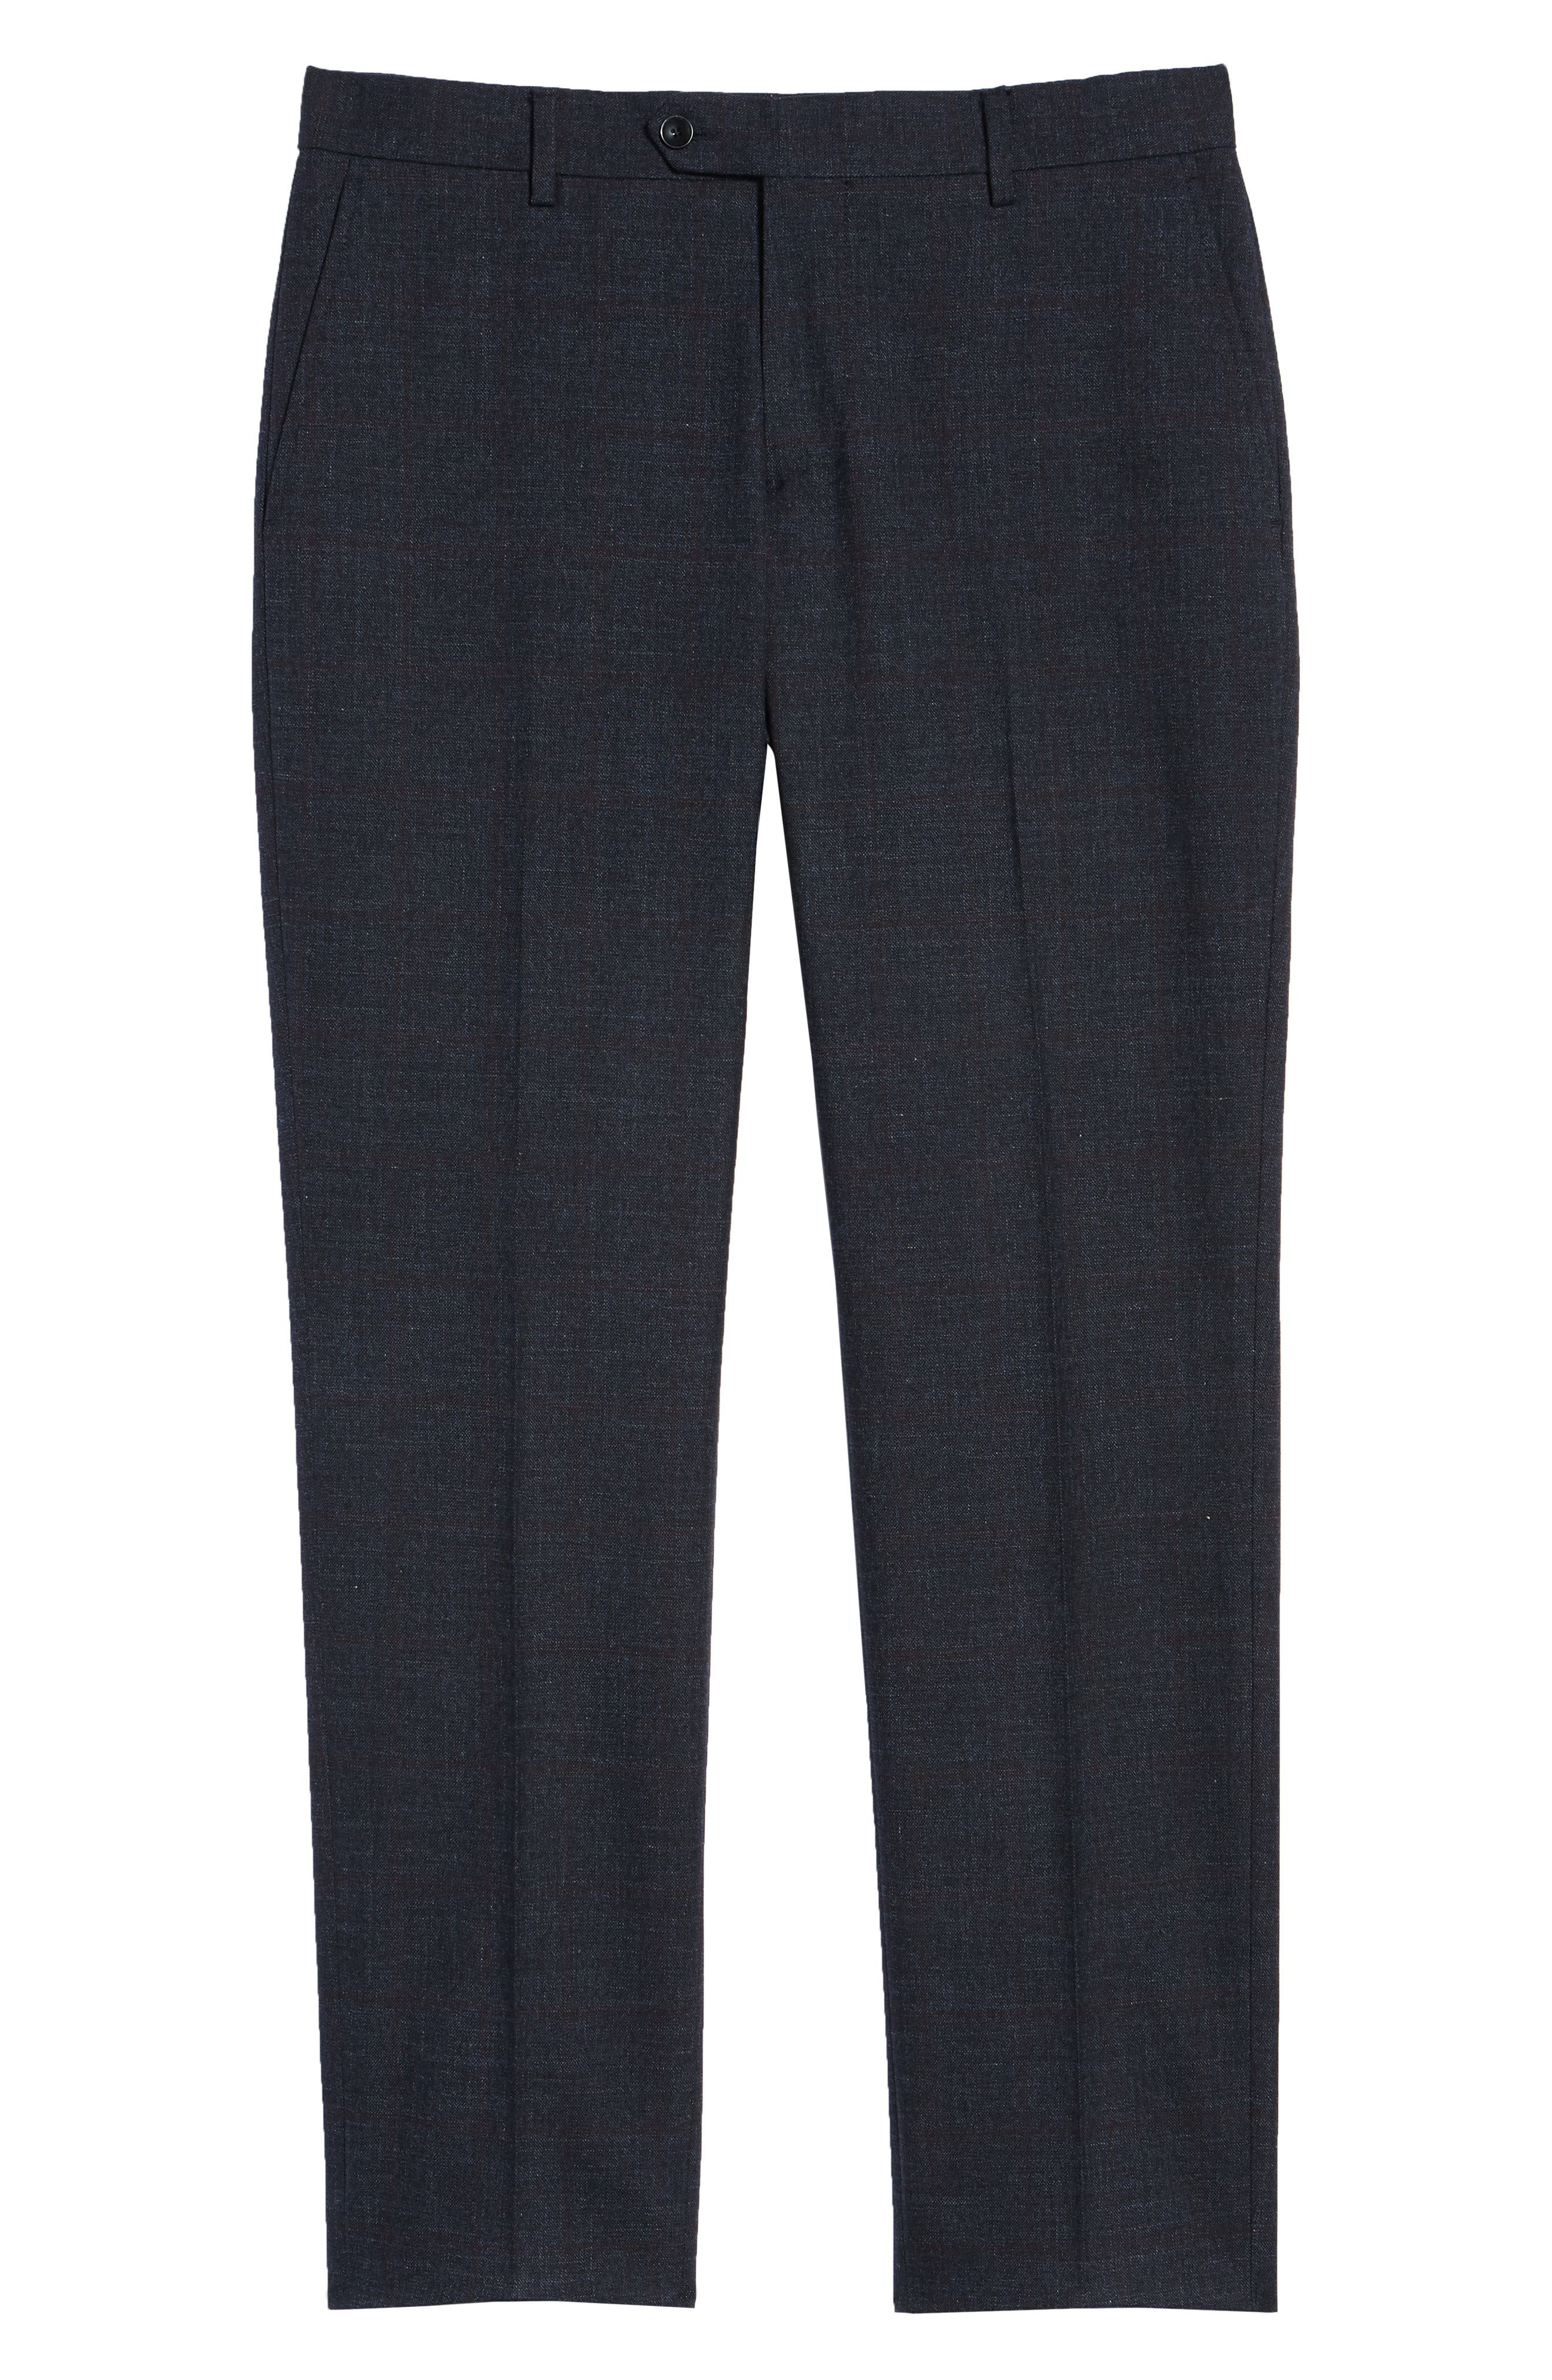 Flat Front Windowpane Stretch Cotton Trousers,                             Alternate thumbnail 6, color,                             NAVY